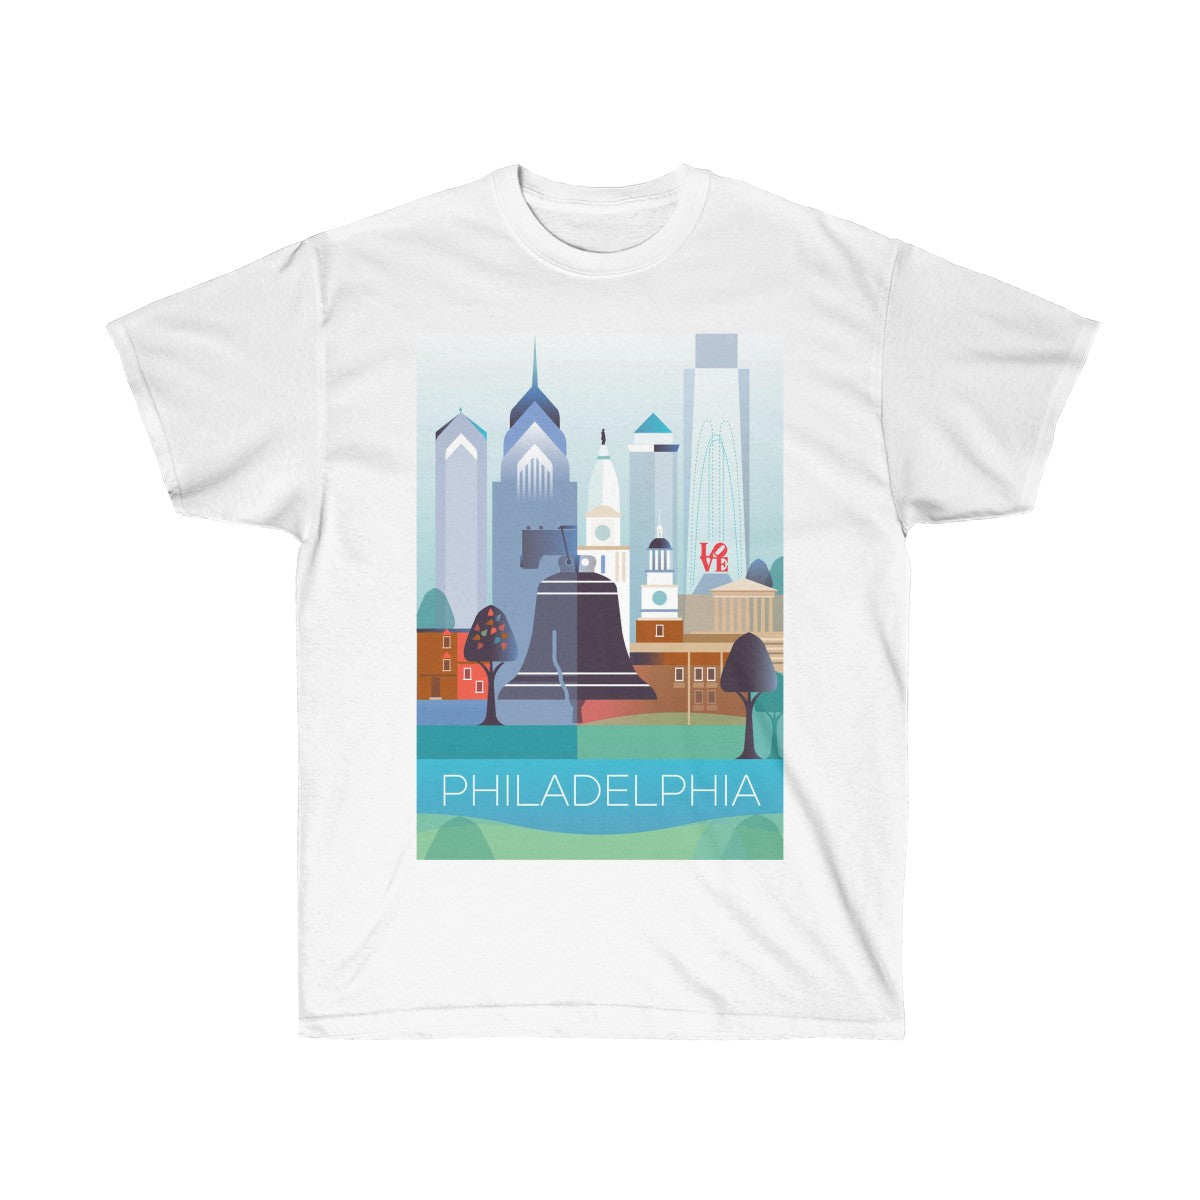 PHILADELPHIA UNISEX ULTRA COTTON TEE